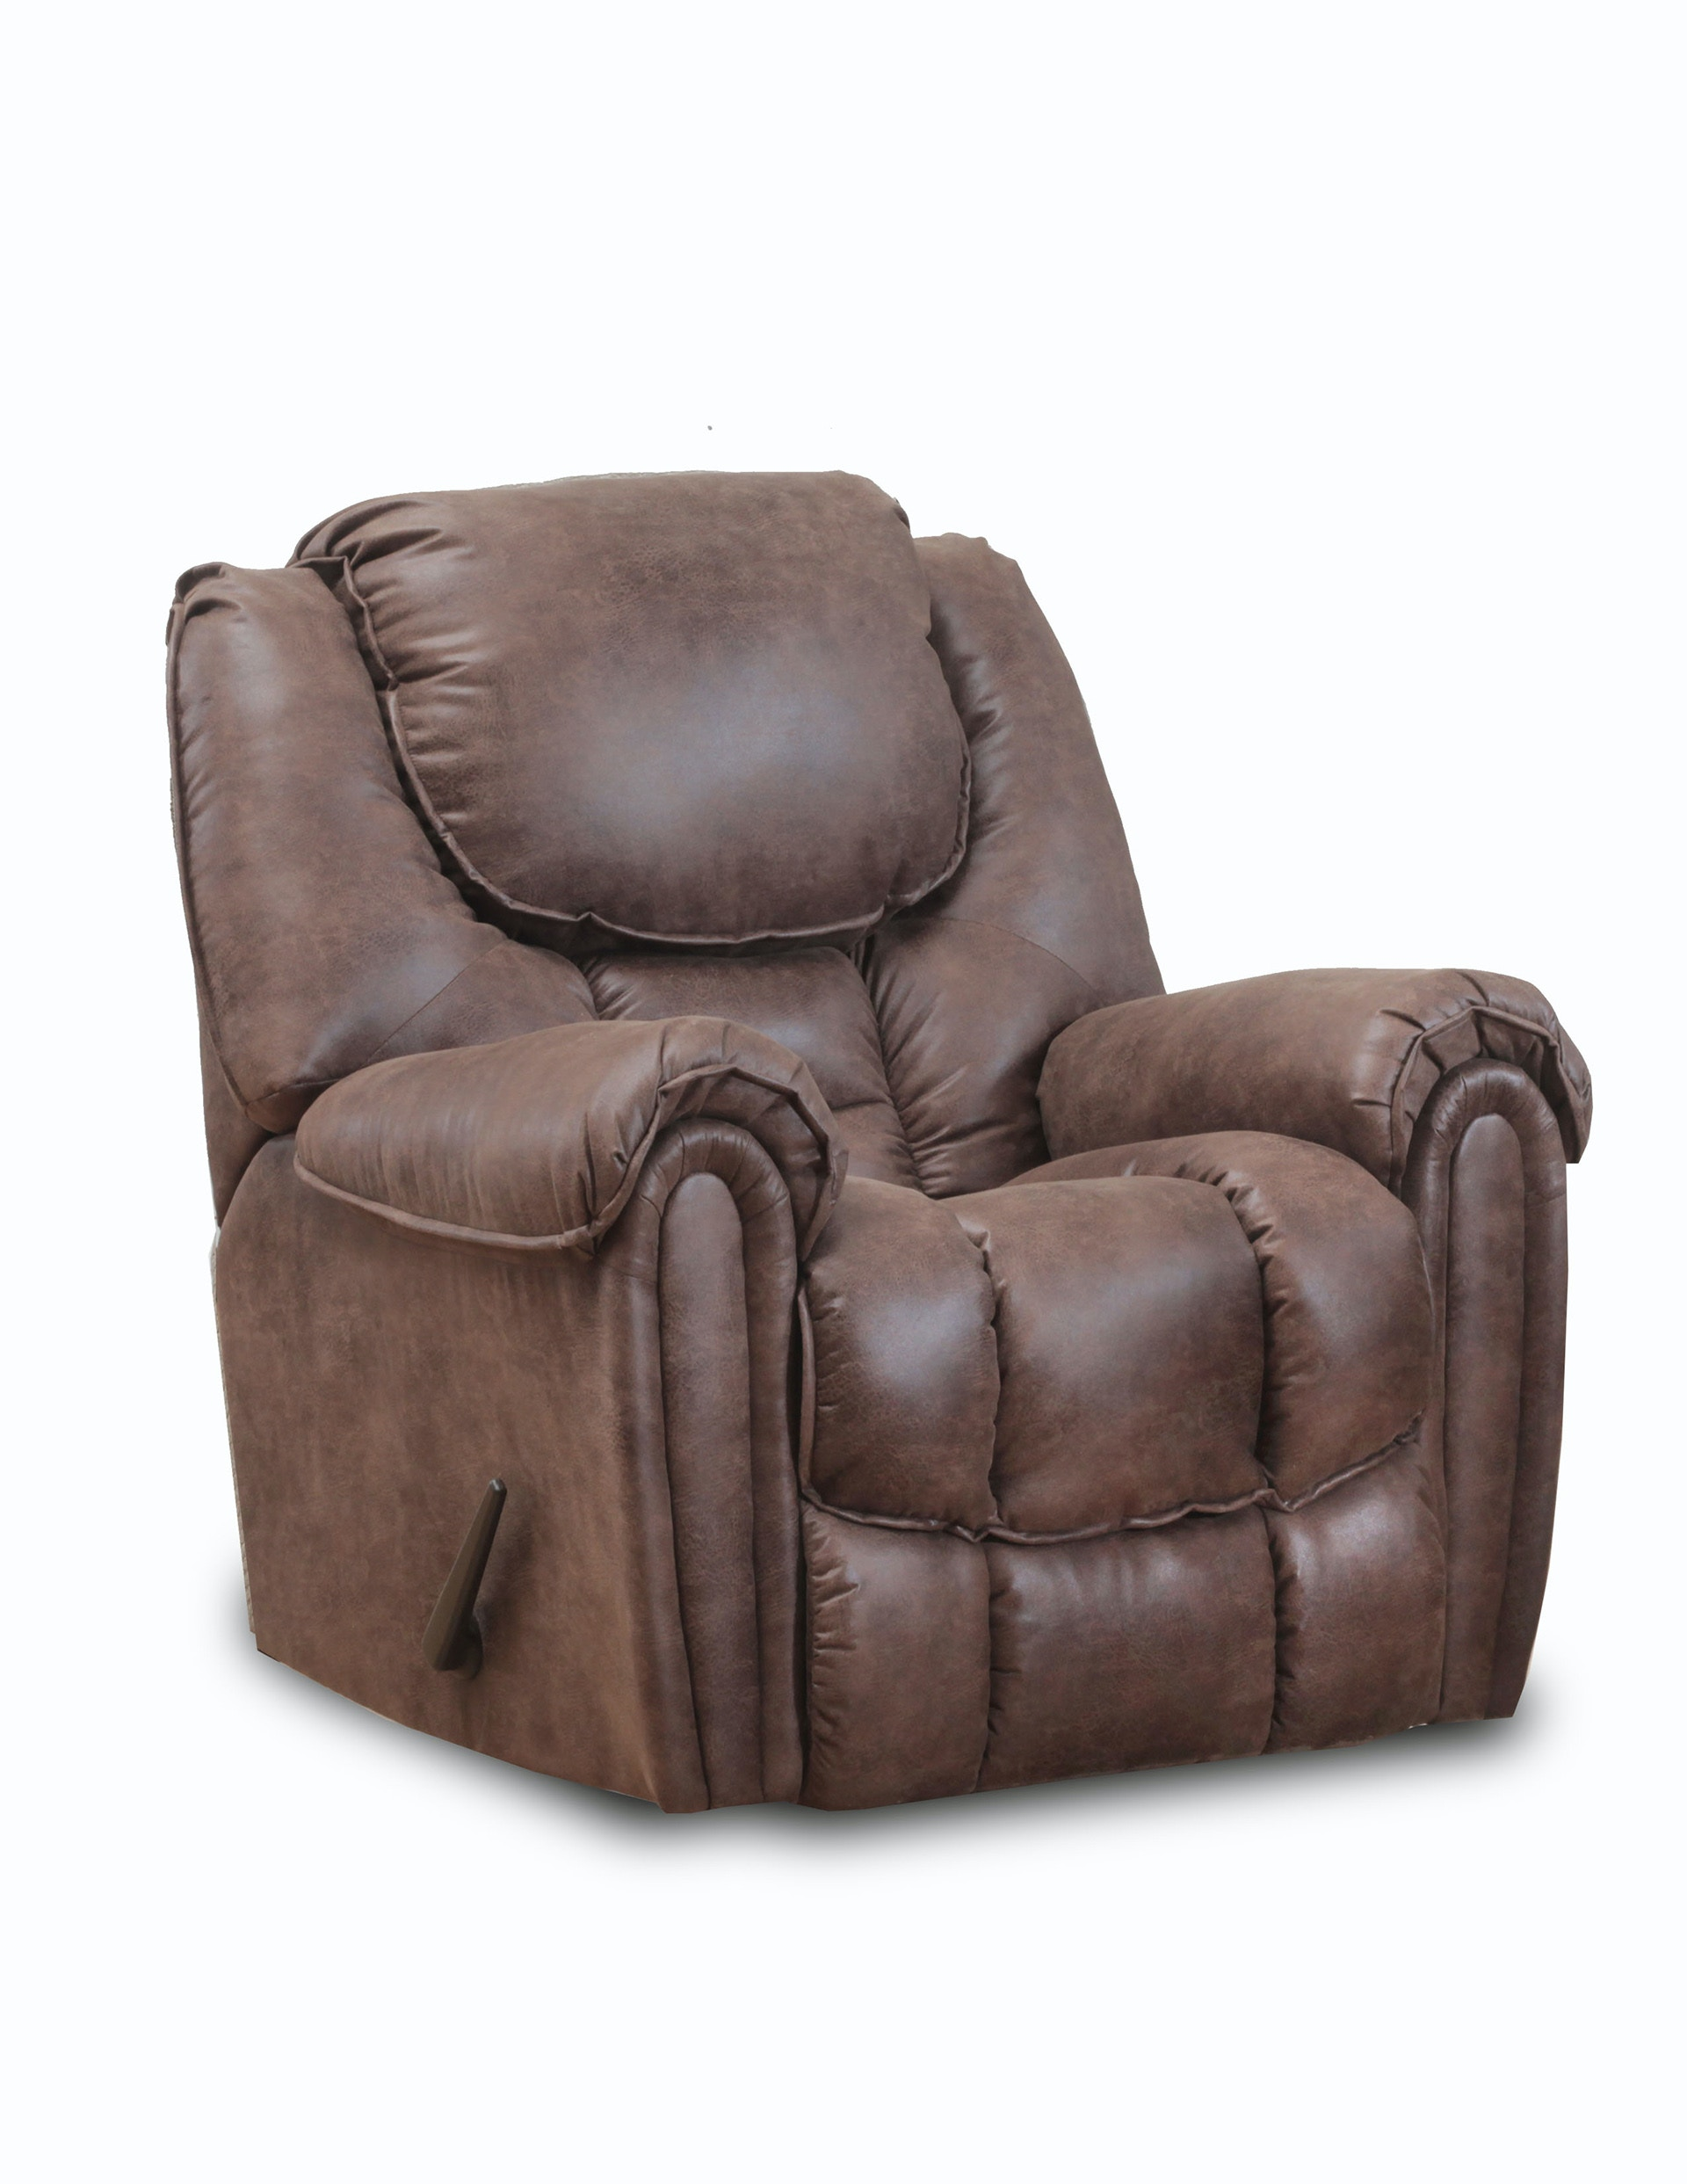 Delicieux HomeStretch Rocker Recliner 122 91 21